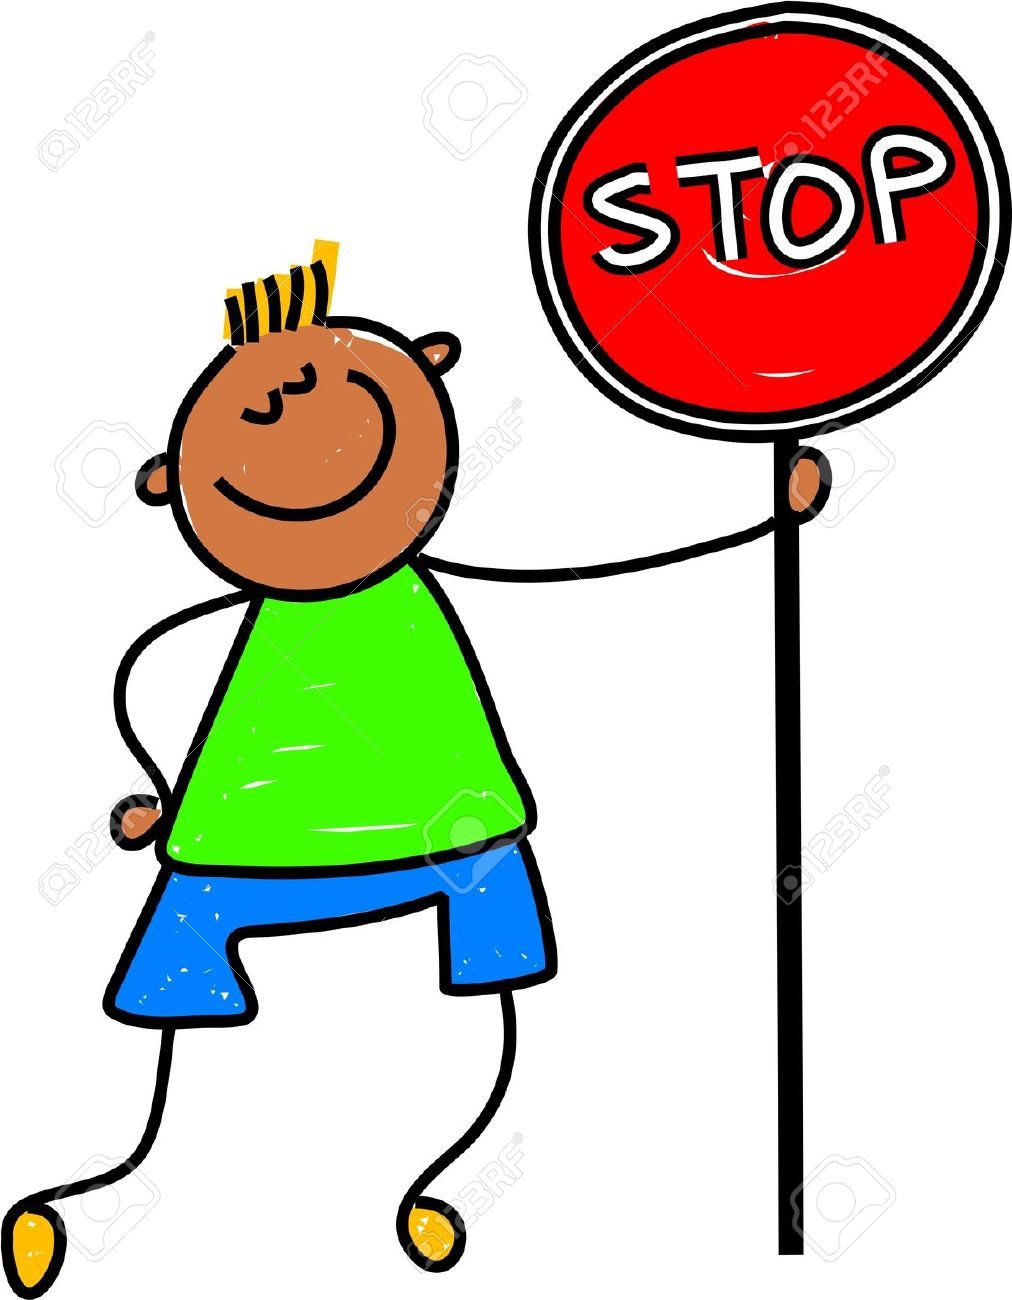 Stopping clipart clipart black and white download Images Of A Stop Sign | Free download best Images Of A Stop ... clipart black and white download